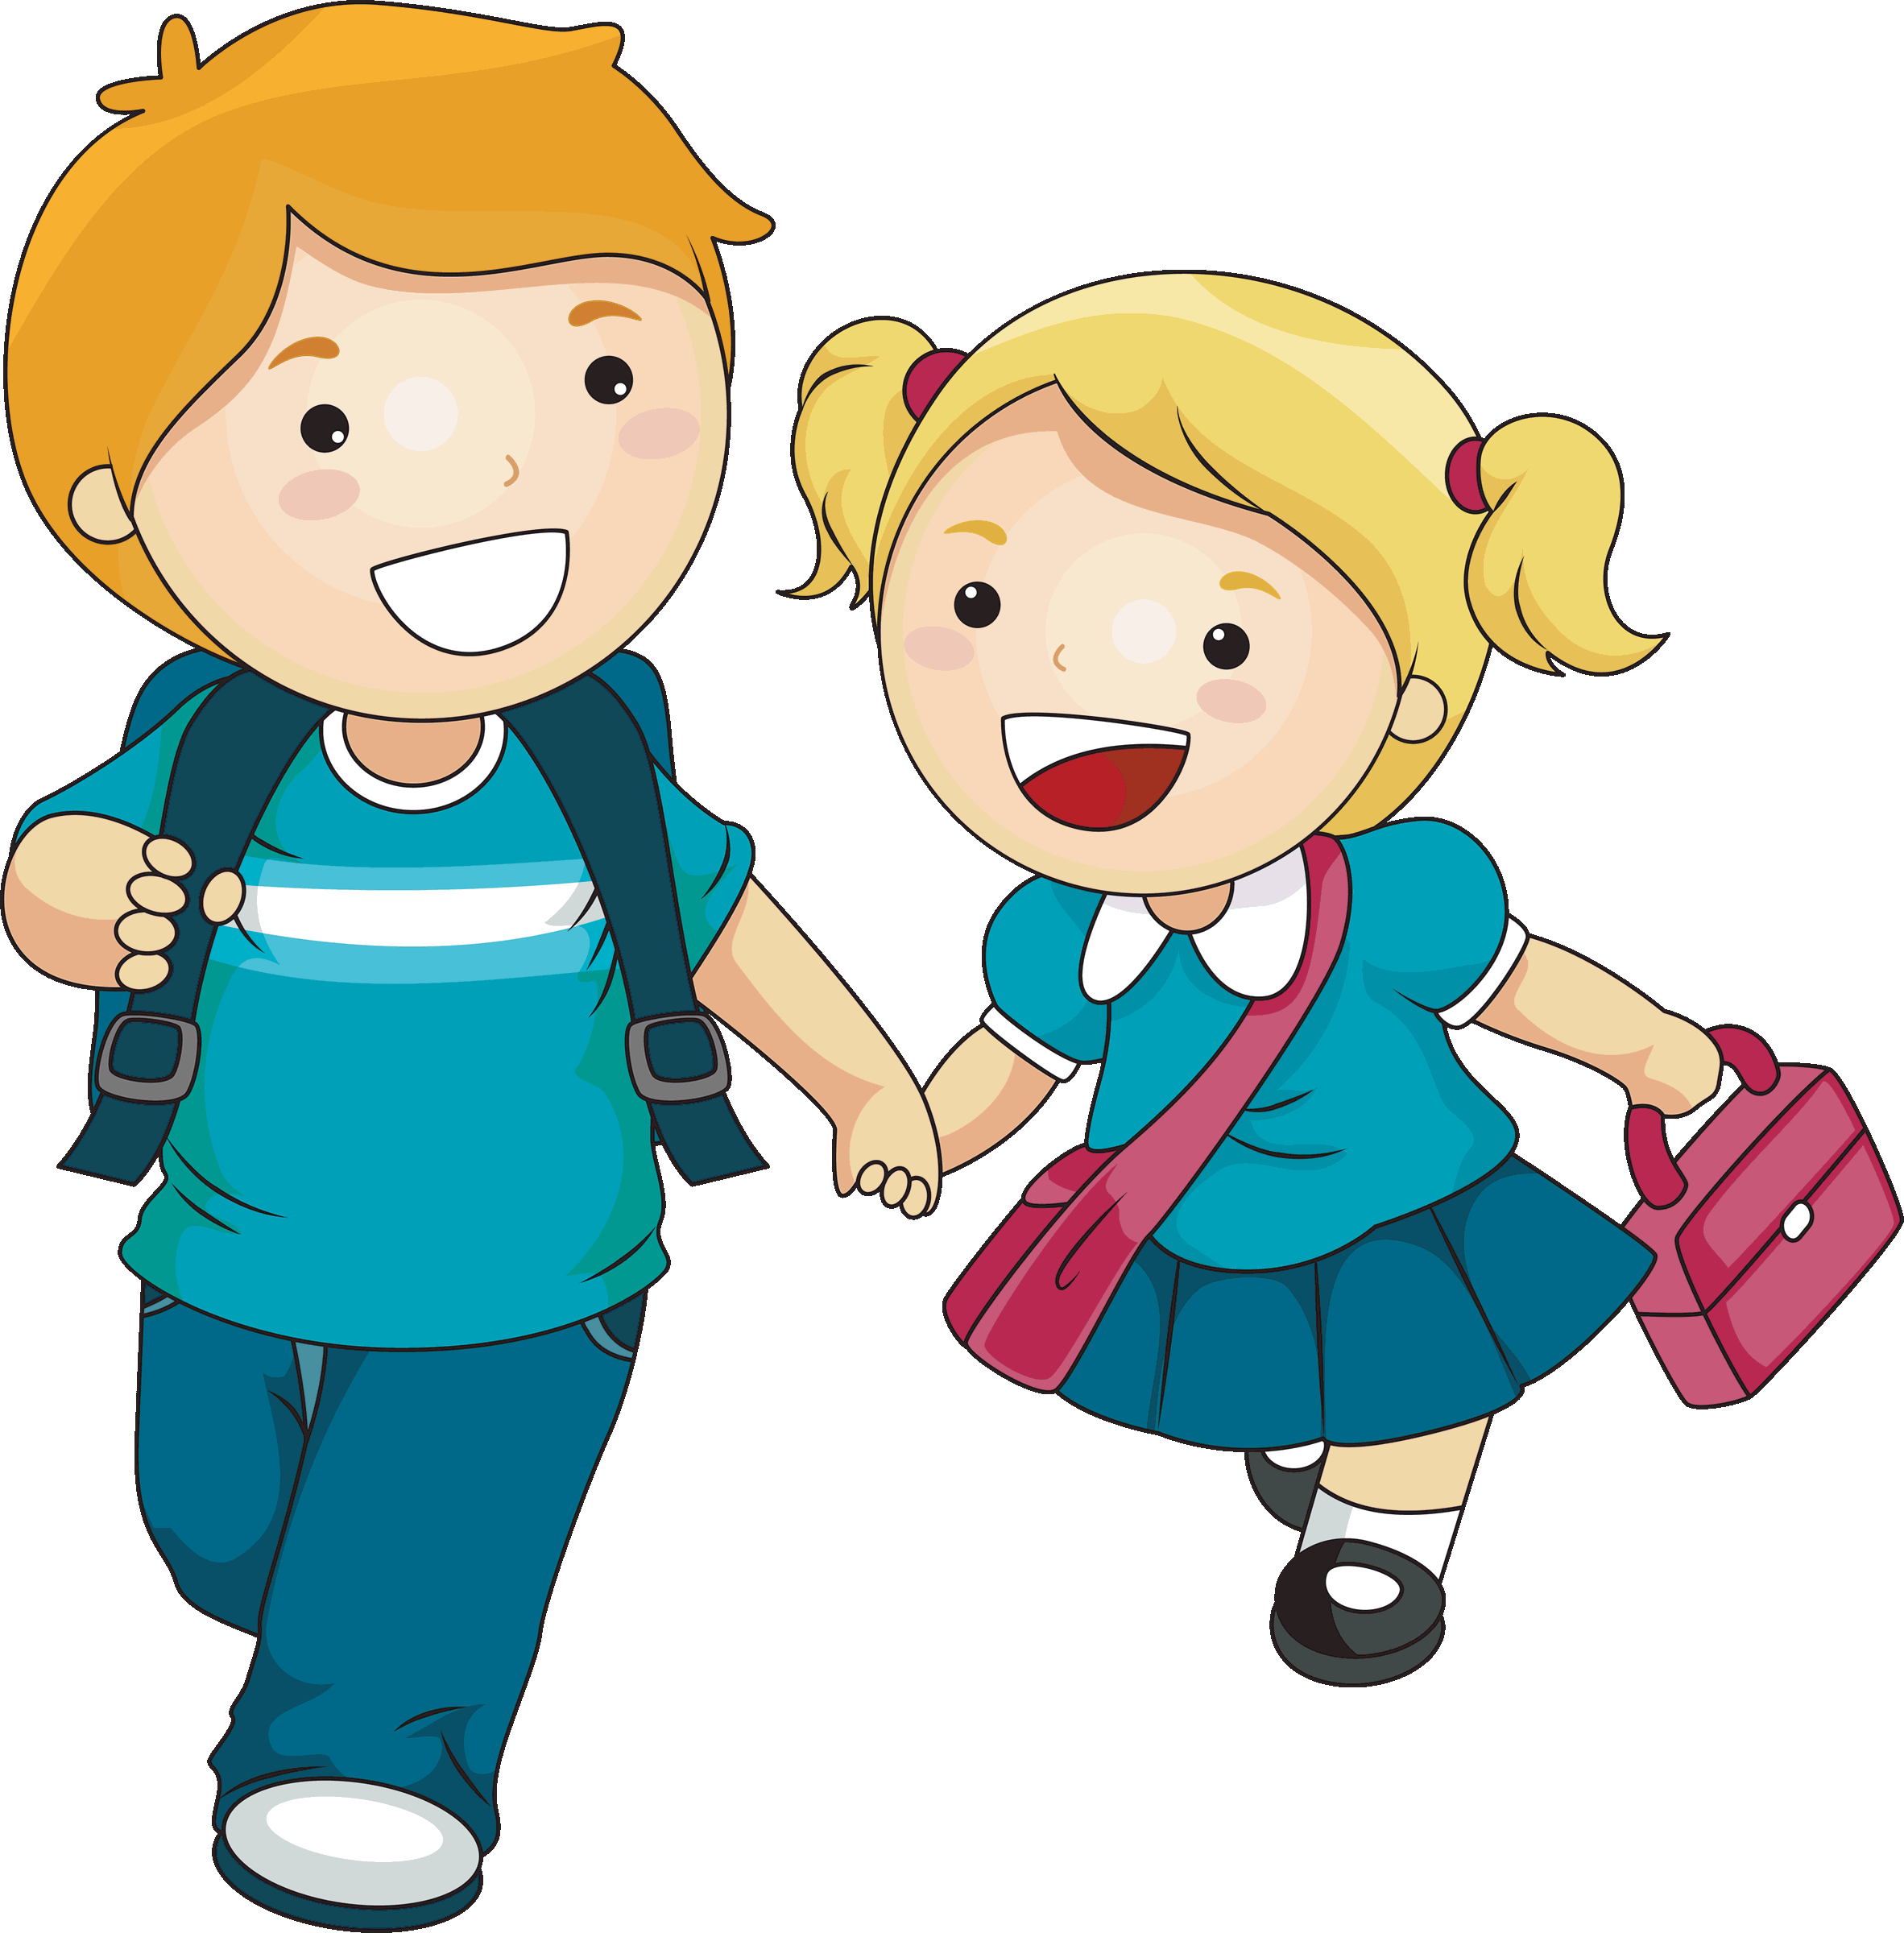 Misbehaving Children At School Clipart.